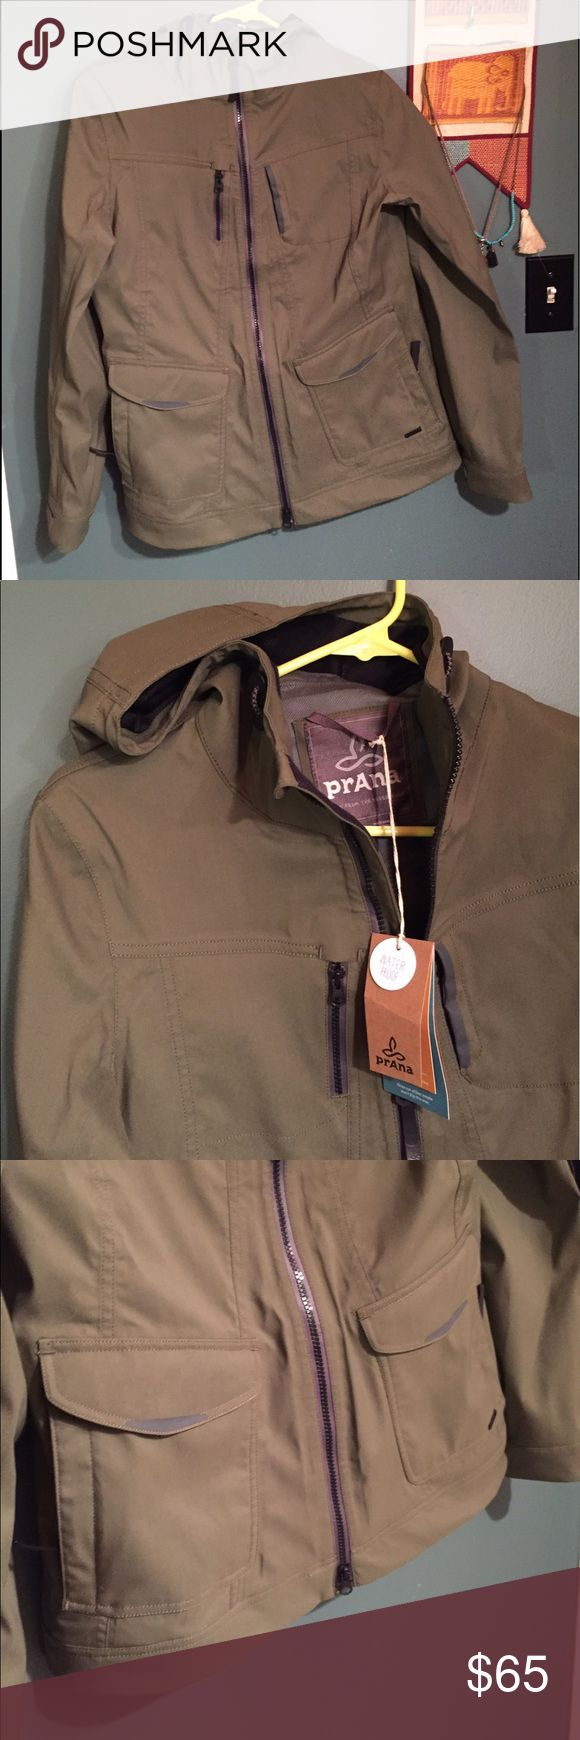 NEW prAna Halle Hooded Jacket - water resistant Waterproof adventure jacket from eco brand, prAna! New with tags, hasn't been worn. Tag says Small but it fits like a Medium. I'm 5'9, 130 lbs and it was a bit too big. Ordered an XS and wear it all the time. Love this jacket. Prana Jackets & Coats